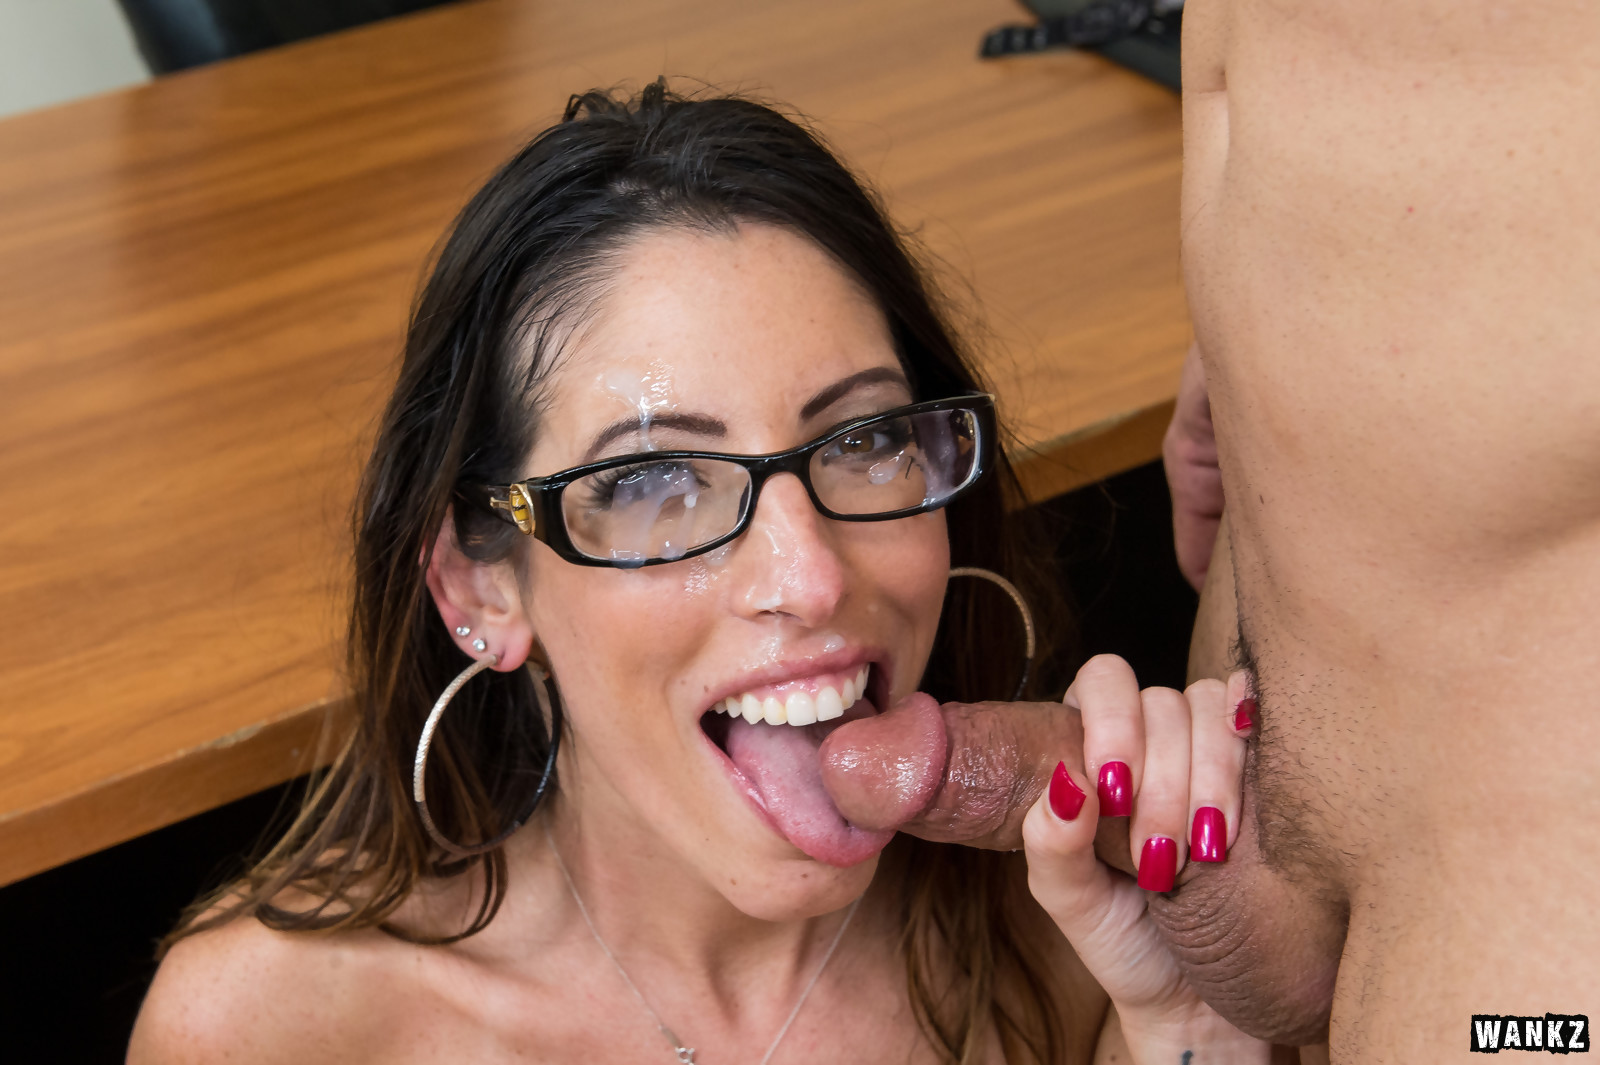 Catherine foxx blowjob to make things worse 9